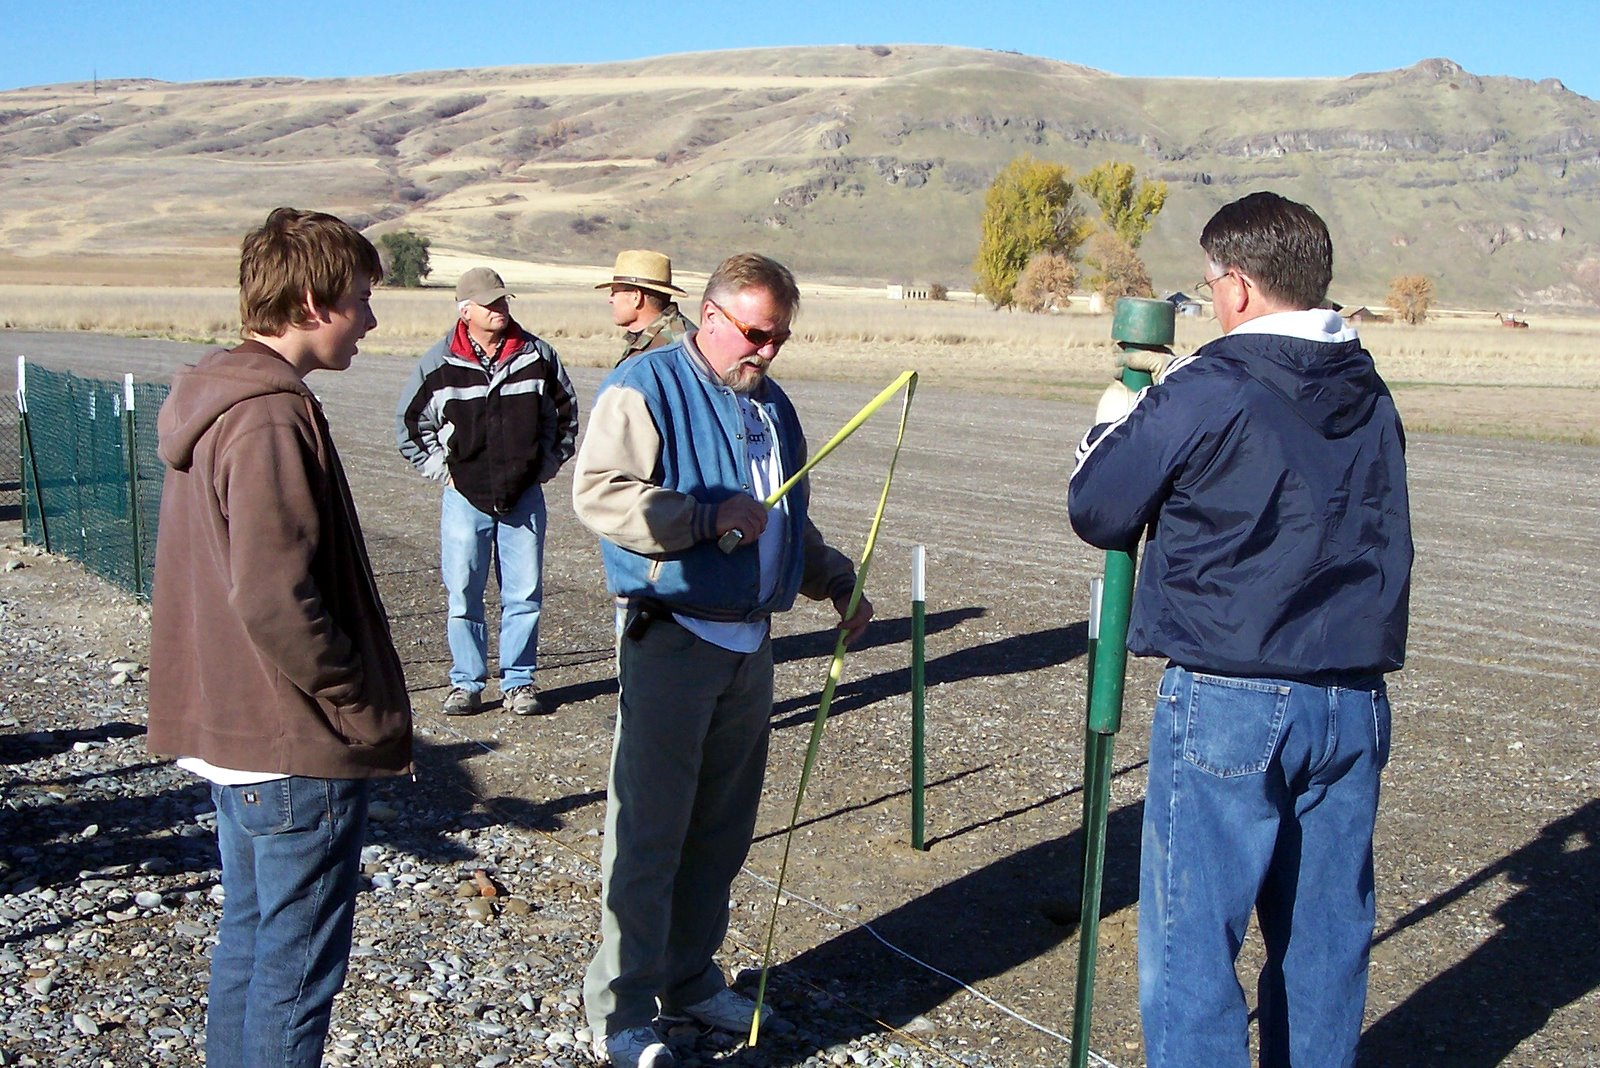 INSTALLATION OF TEMPORARY FIELD SAFETY FENCE. RICK JENSEN, DICK NELSEN, DAVE STUART, AMOS PALMER. 24 OCTOBER 2006